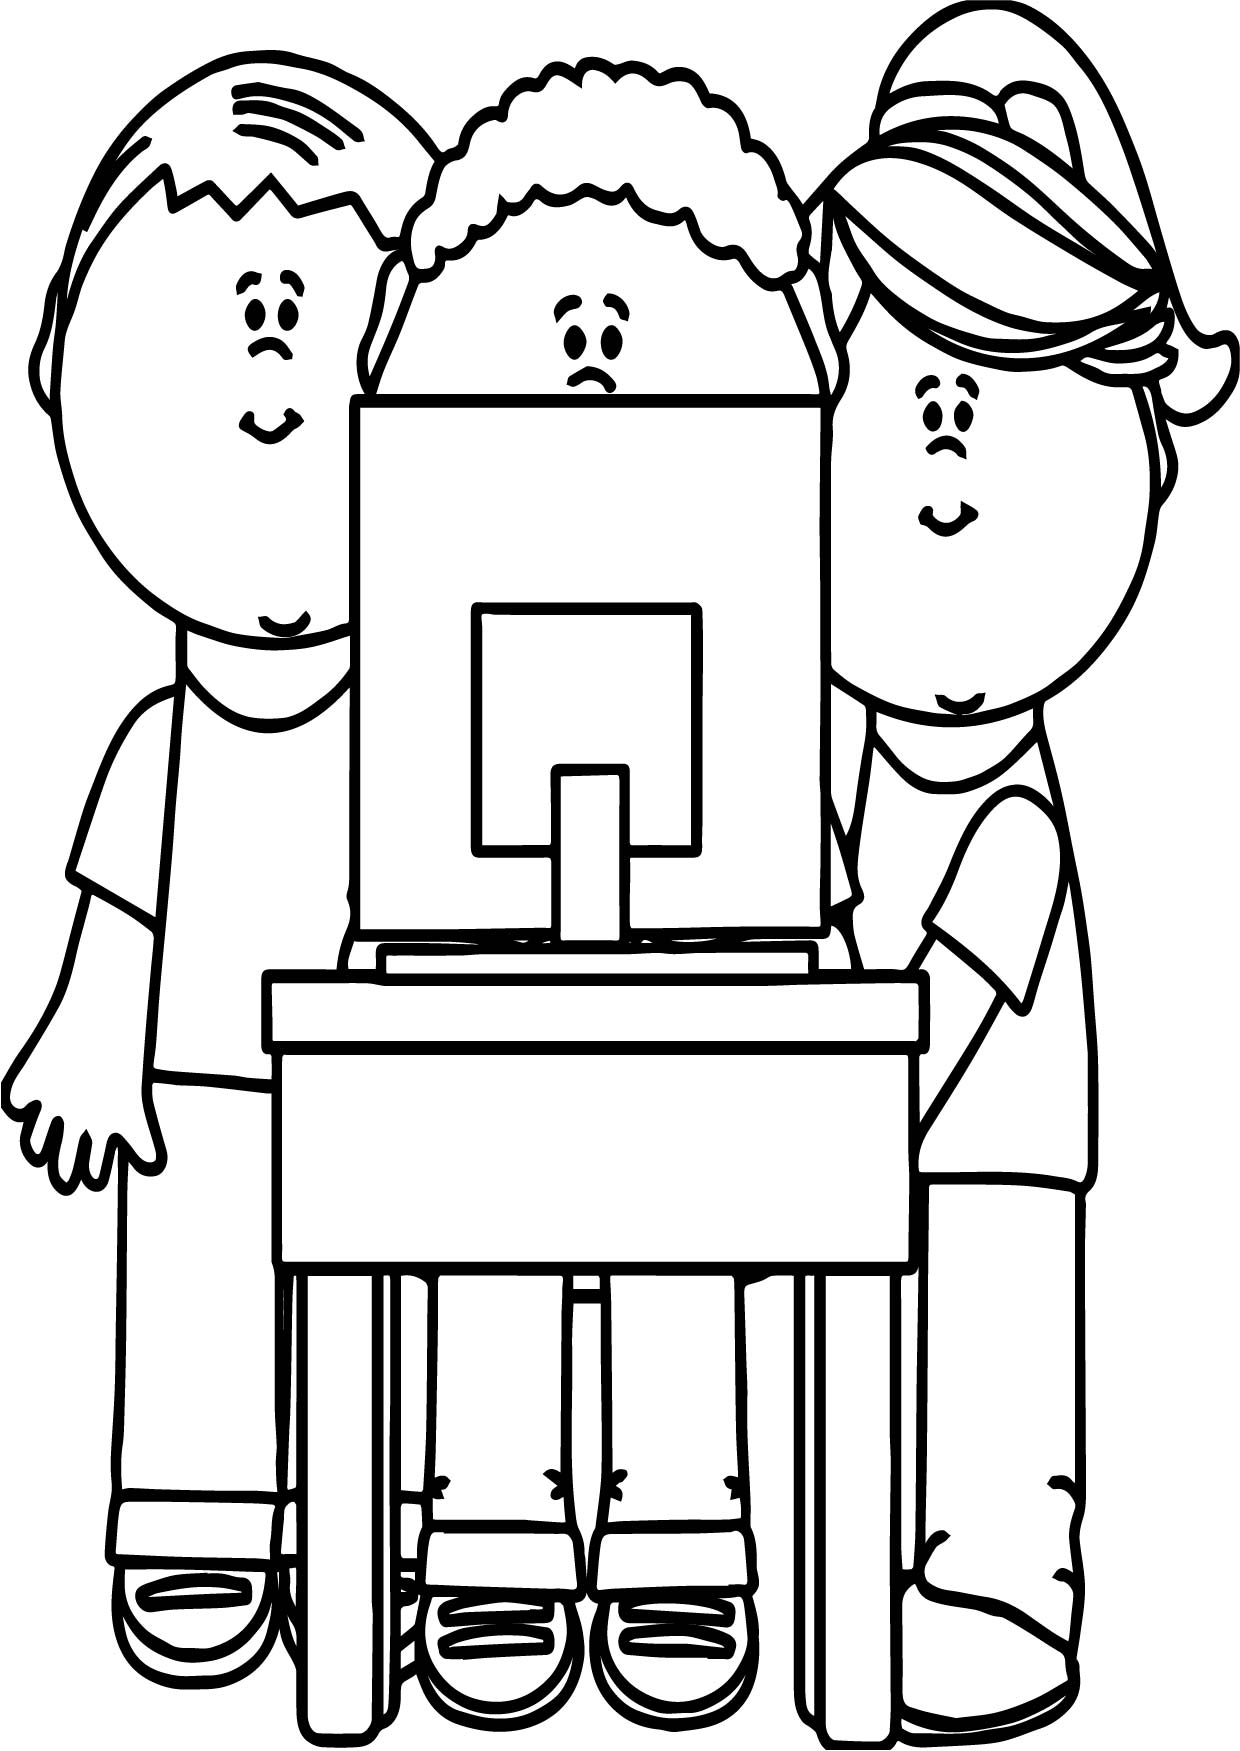 Computer Coloring Pages | coloring.rocks!